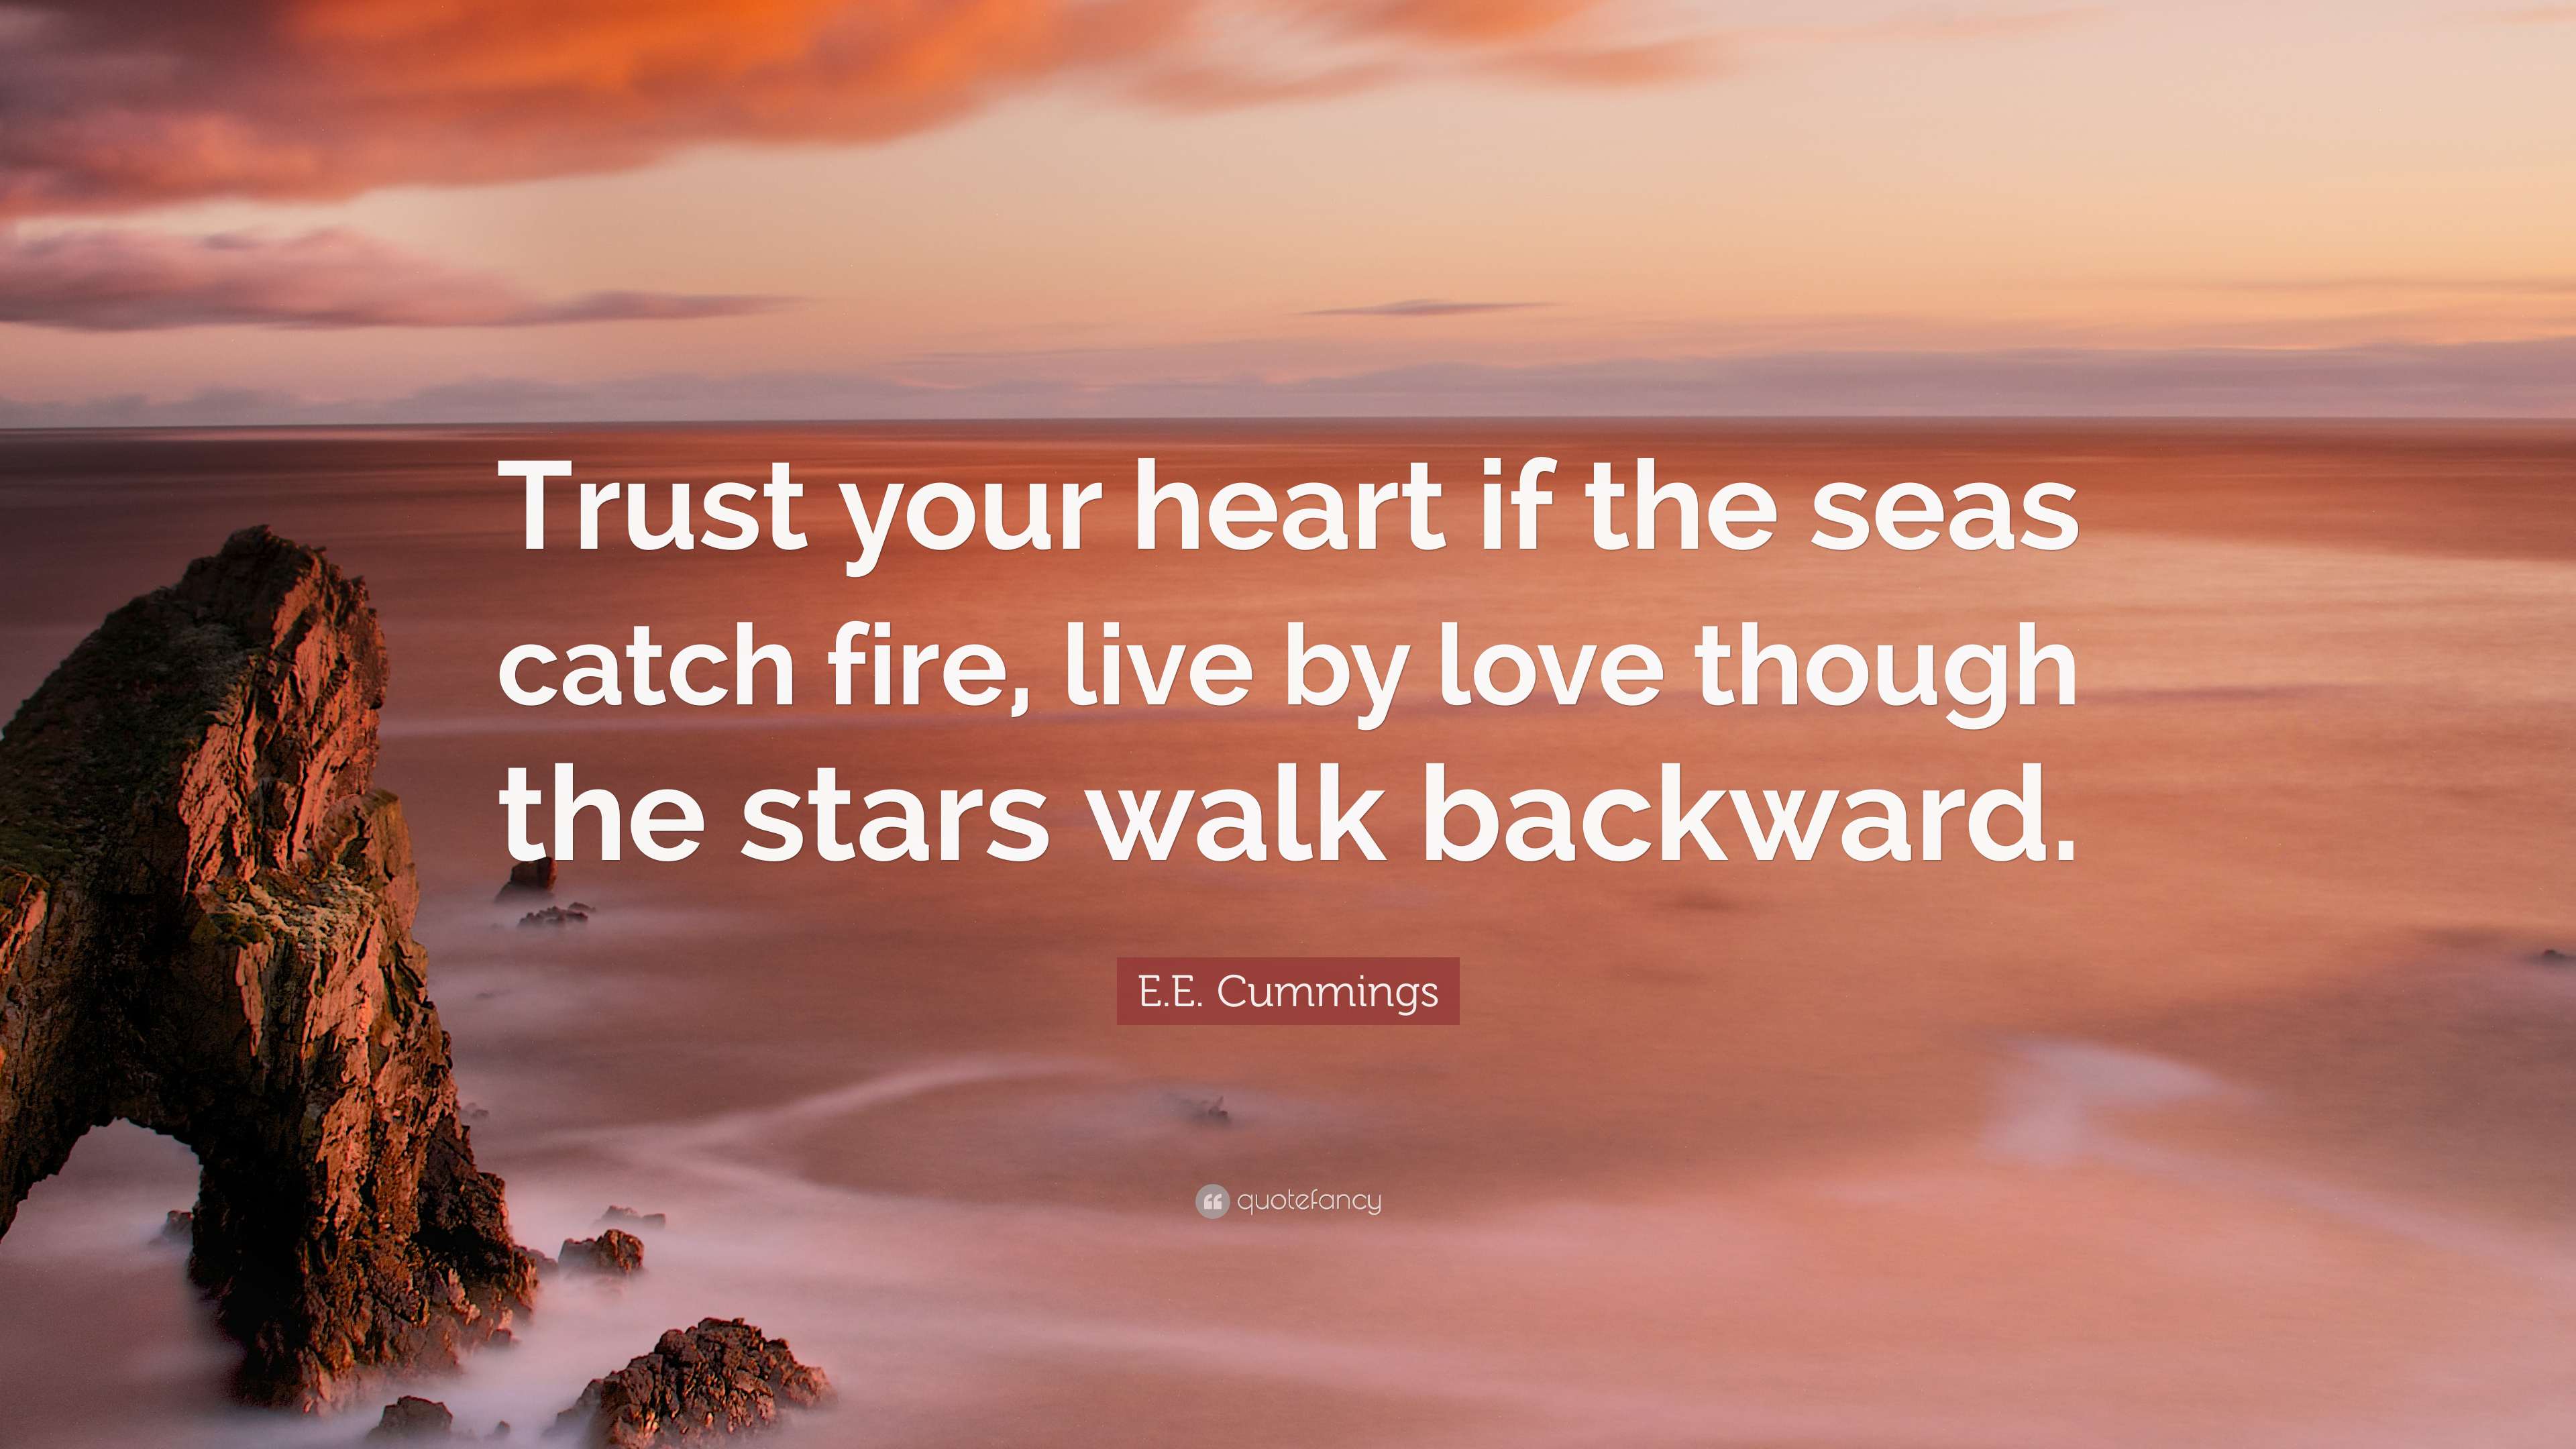 Trust Your Heart If The Seas Catch Fire